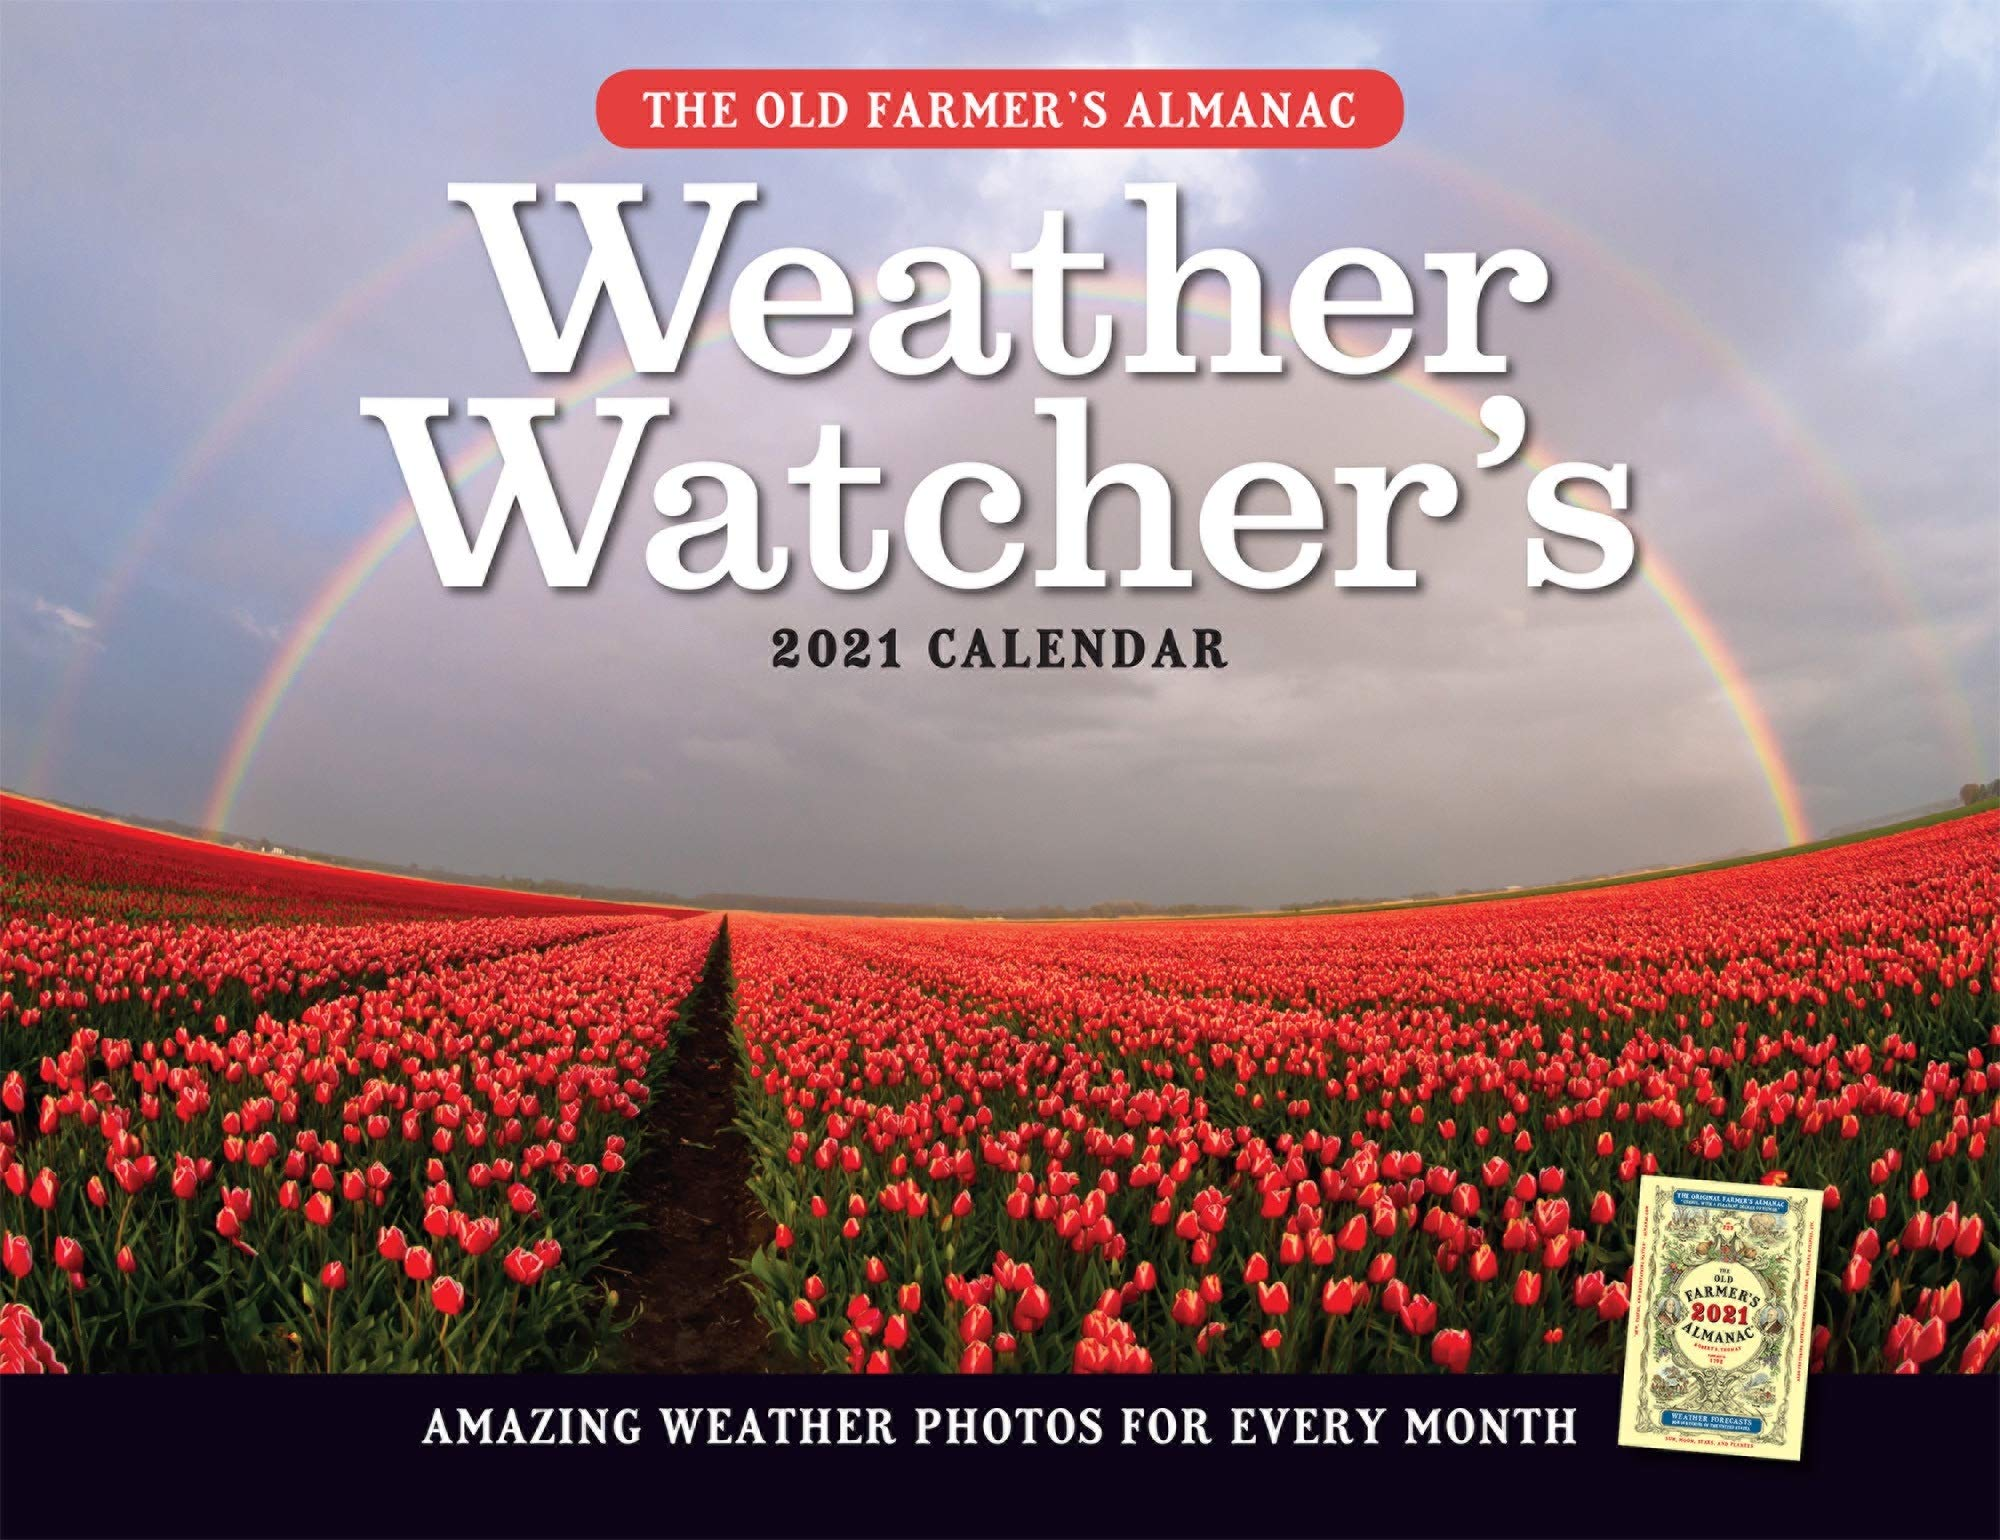 Farmers Almanac Calendar 2021 The 2021 Old Farmer's Almanac Weather Watcher's Calendar: Old